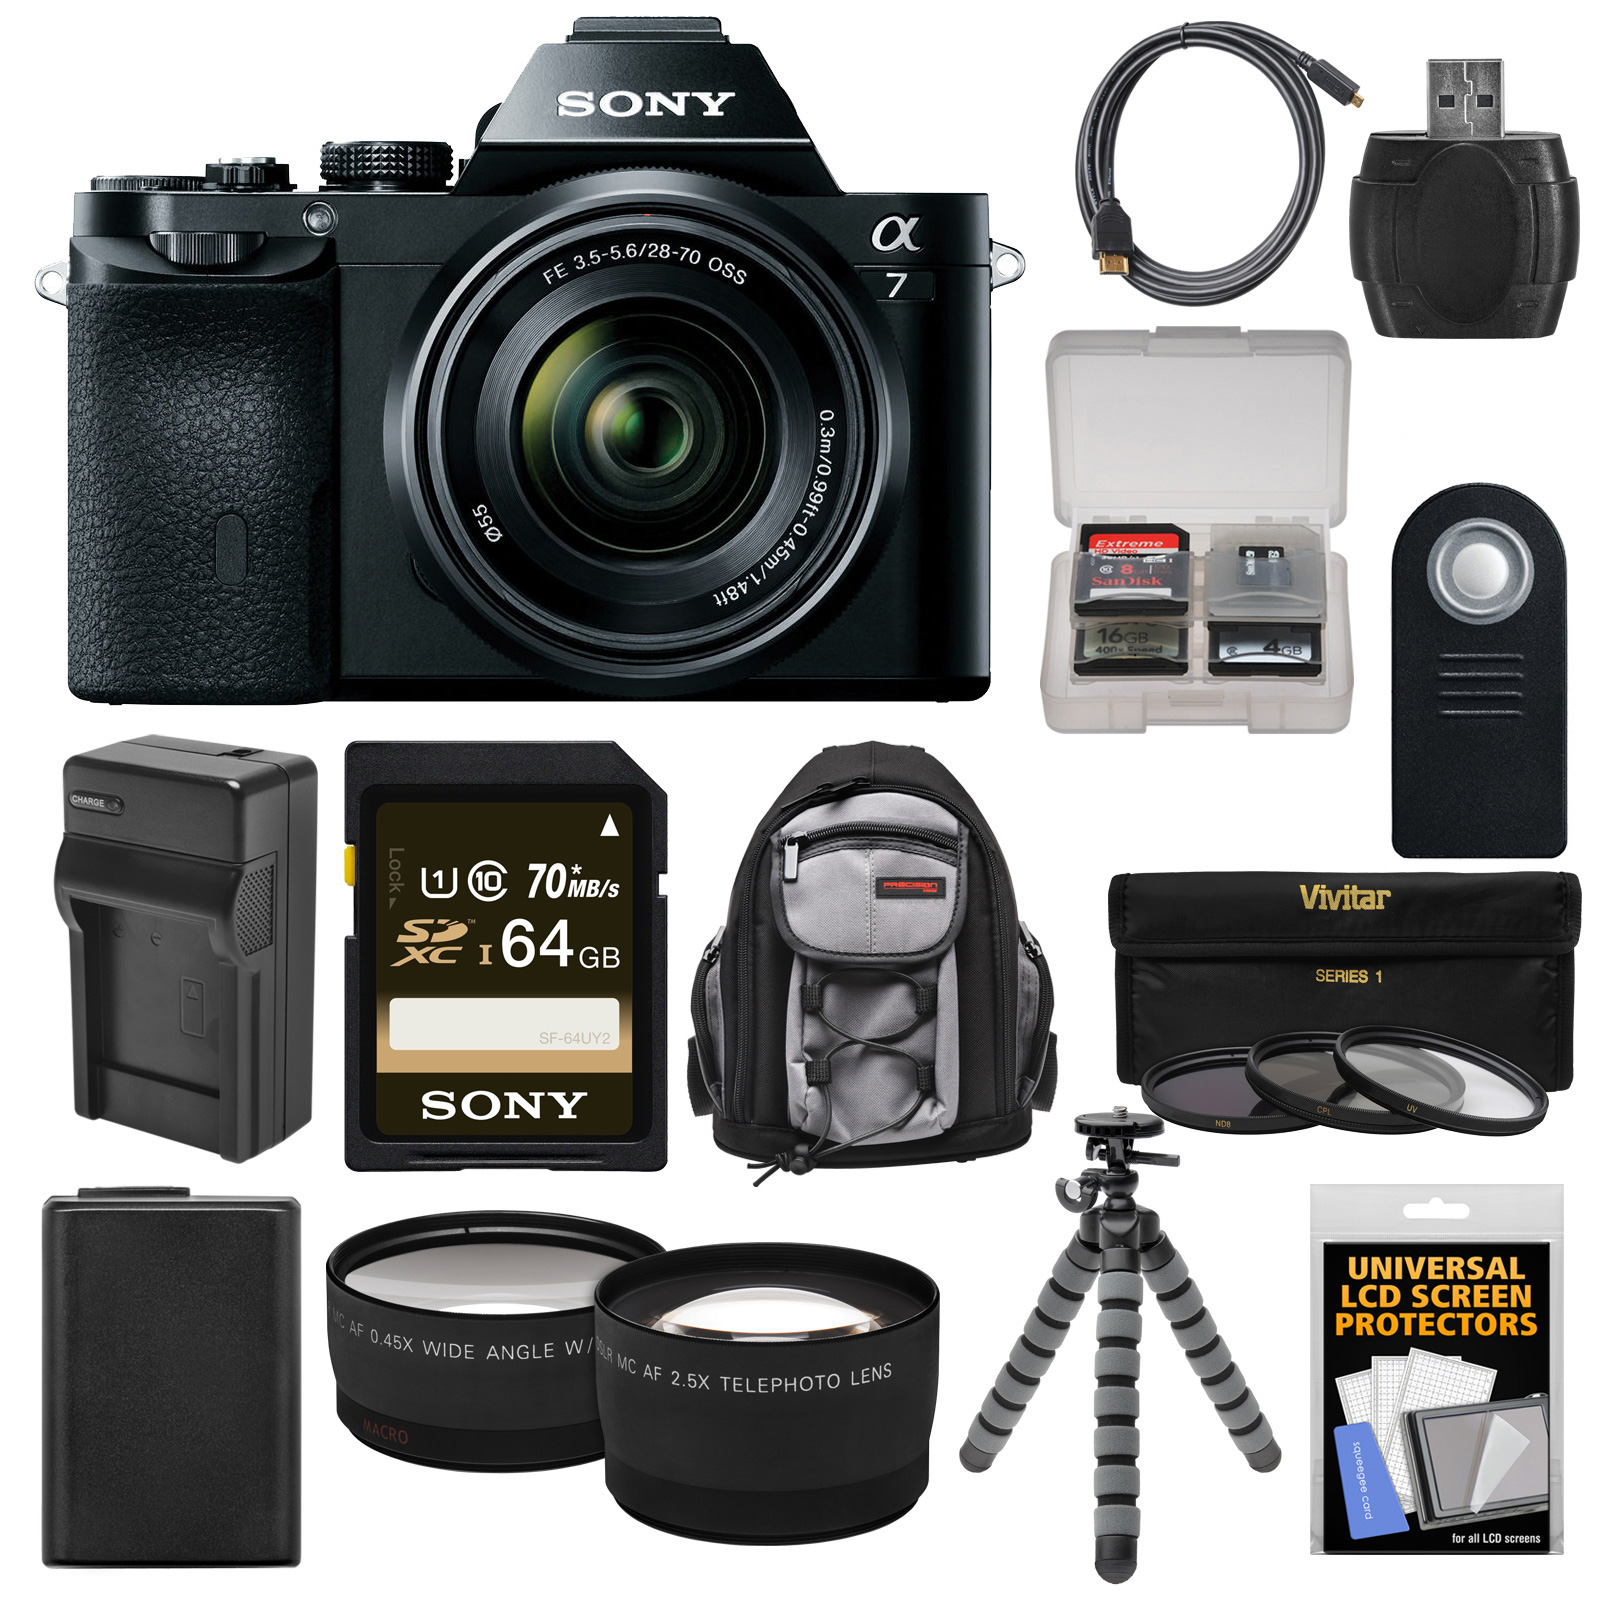 Sony Alpha A7 Digital Camera & 28-70mm FE OSS Lens with 64GB Card + Battery & Charger + Backpack + Flex Tripod... by Sony